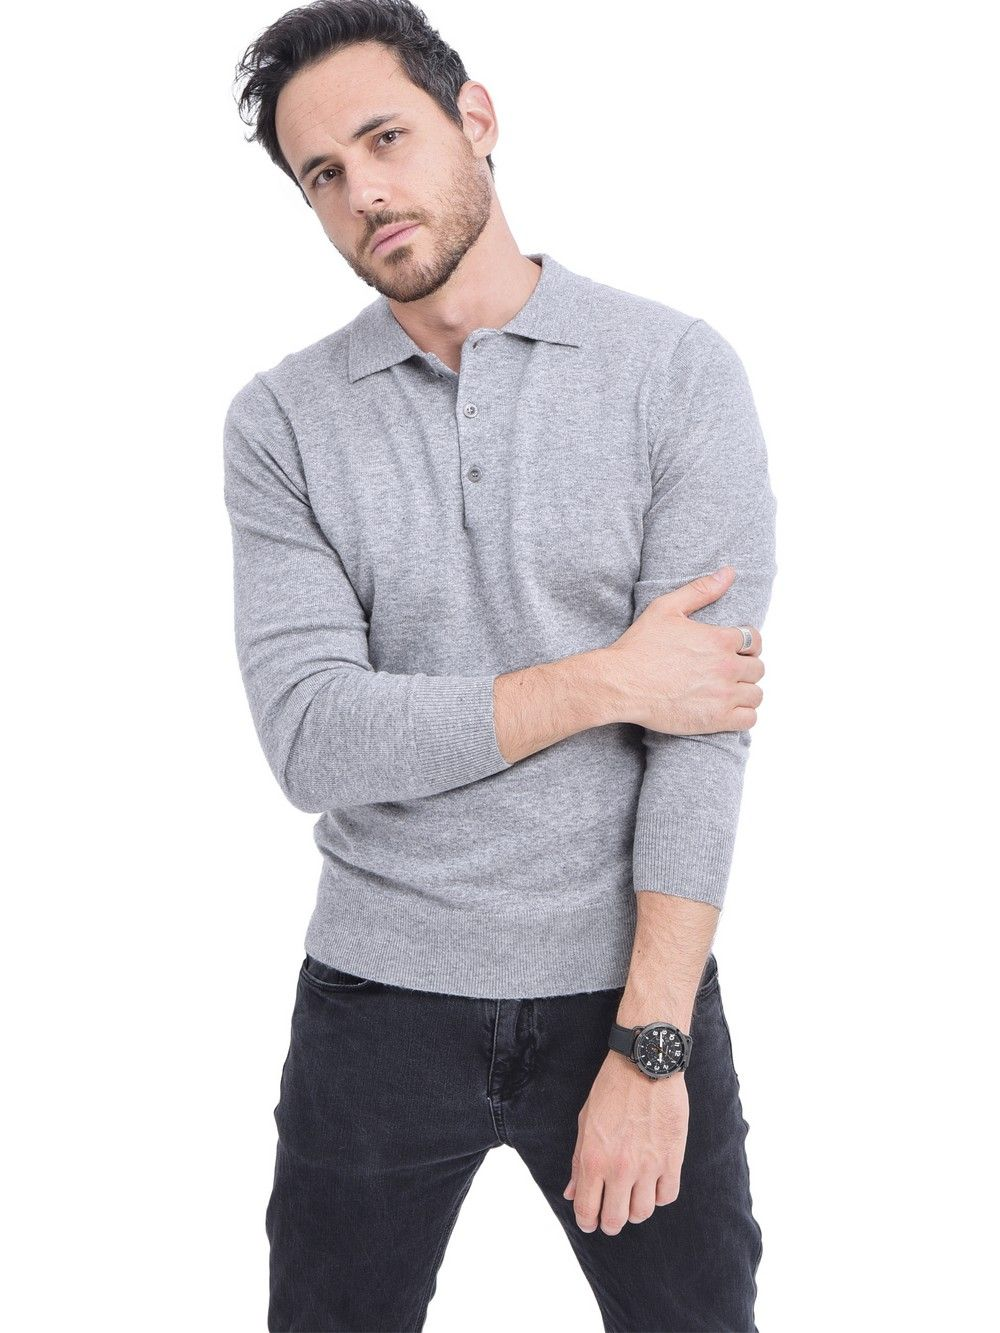 C&JO Polo Neck Button Up Sweater in Light Grey